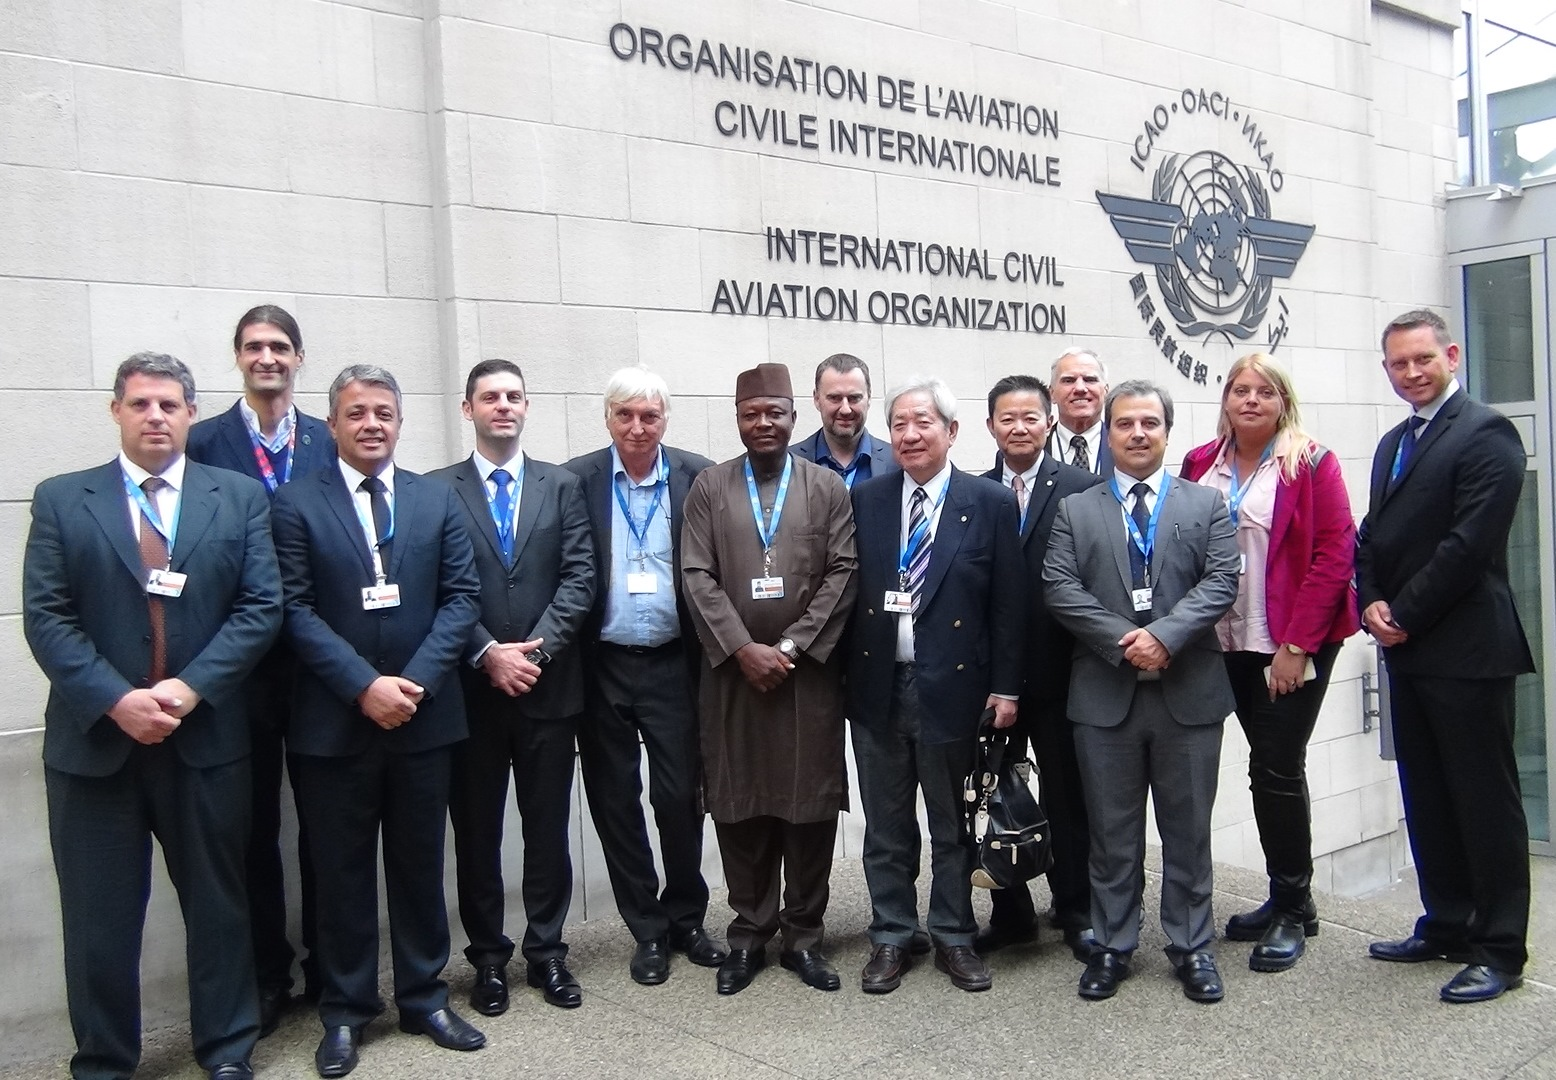 ITF civil aviation unions lobbying over the big issues at the ICAO Assembly